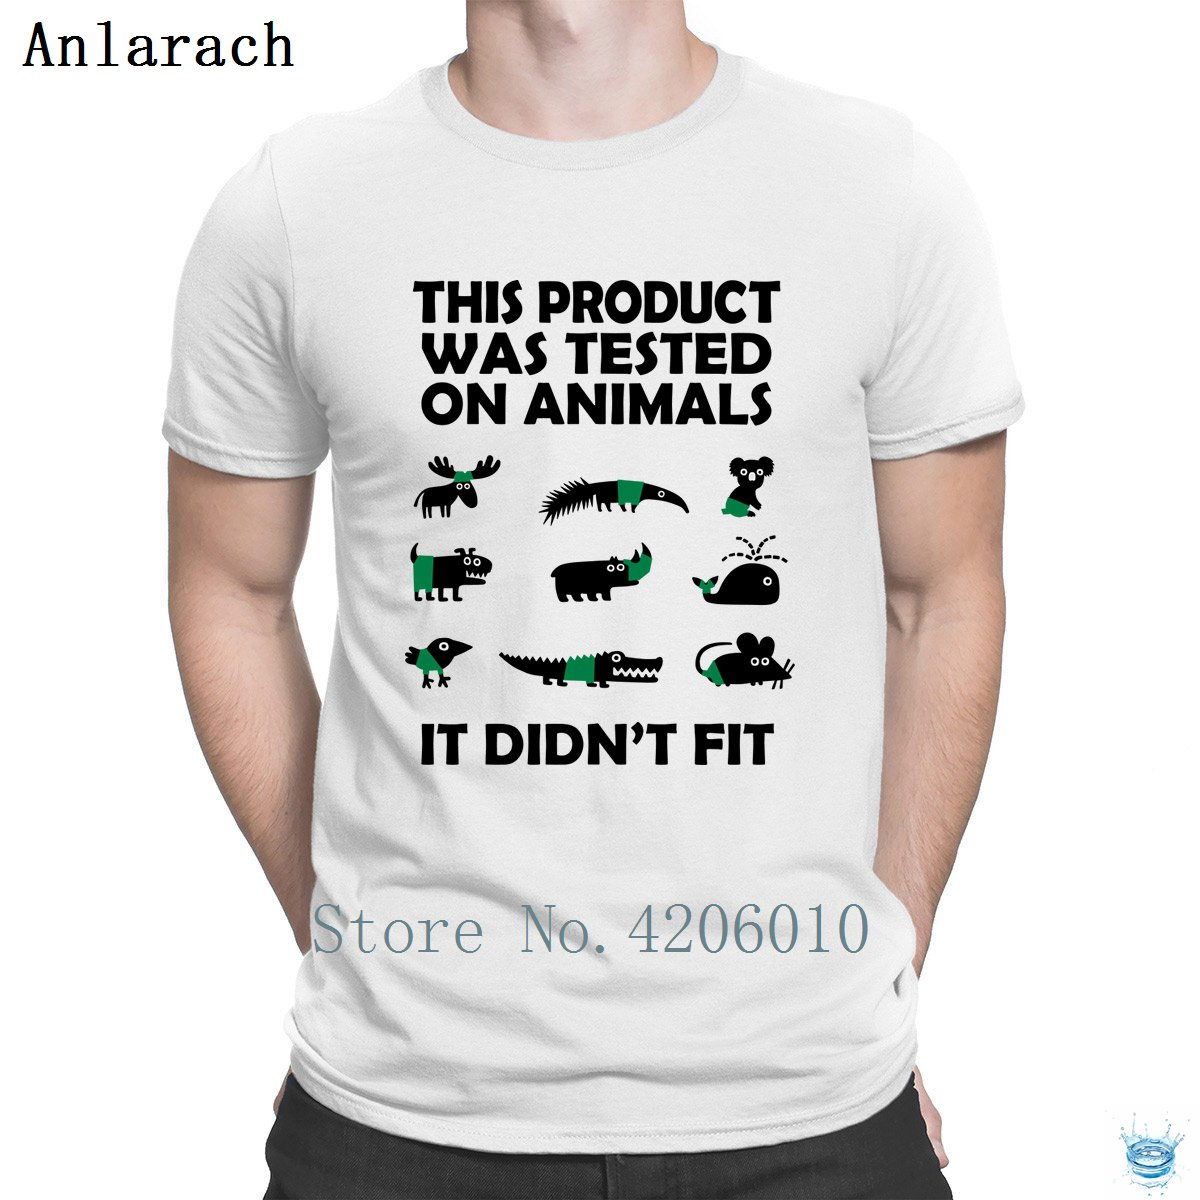 Product Tested On Animals Didn't Fit T-Shirts Designing Clothing Tshirt For Men Crazy Vintage Tee Shirt Summer Style